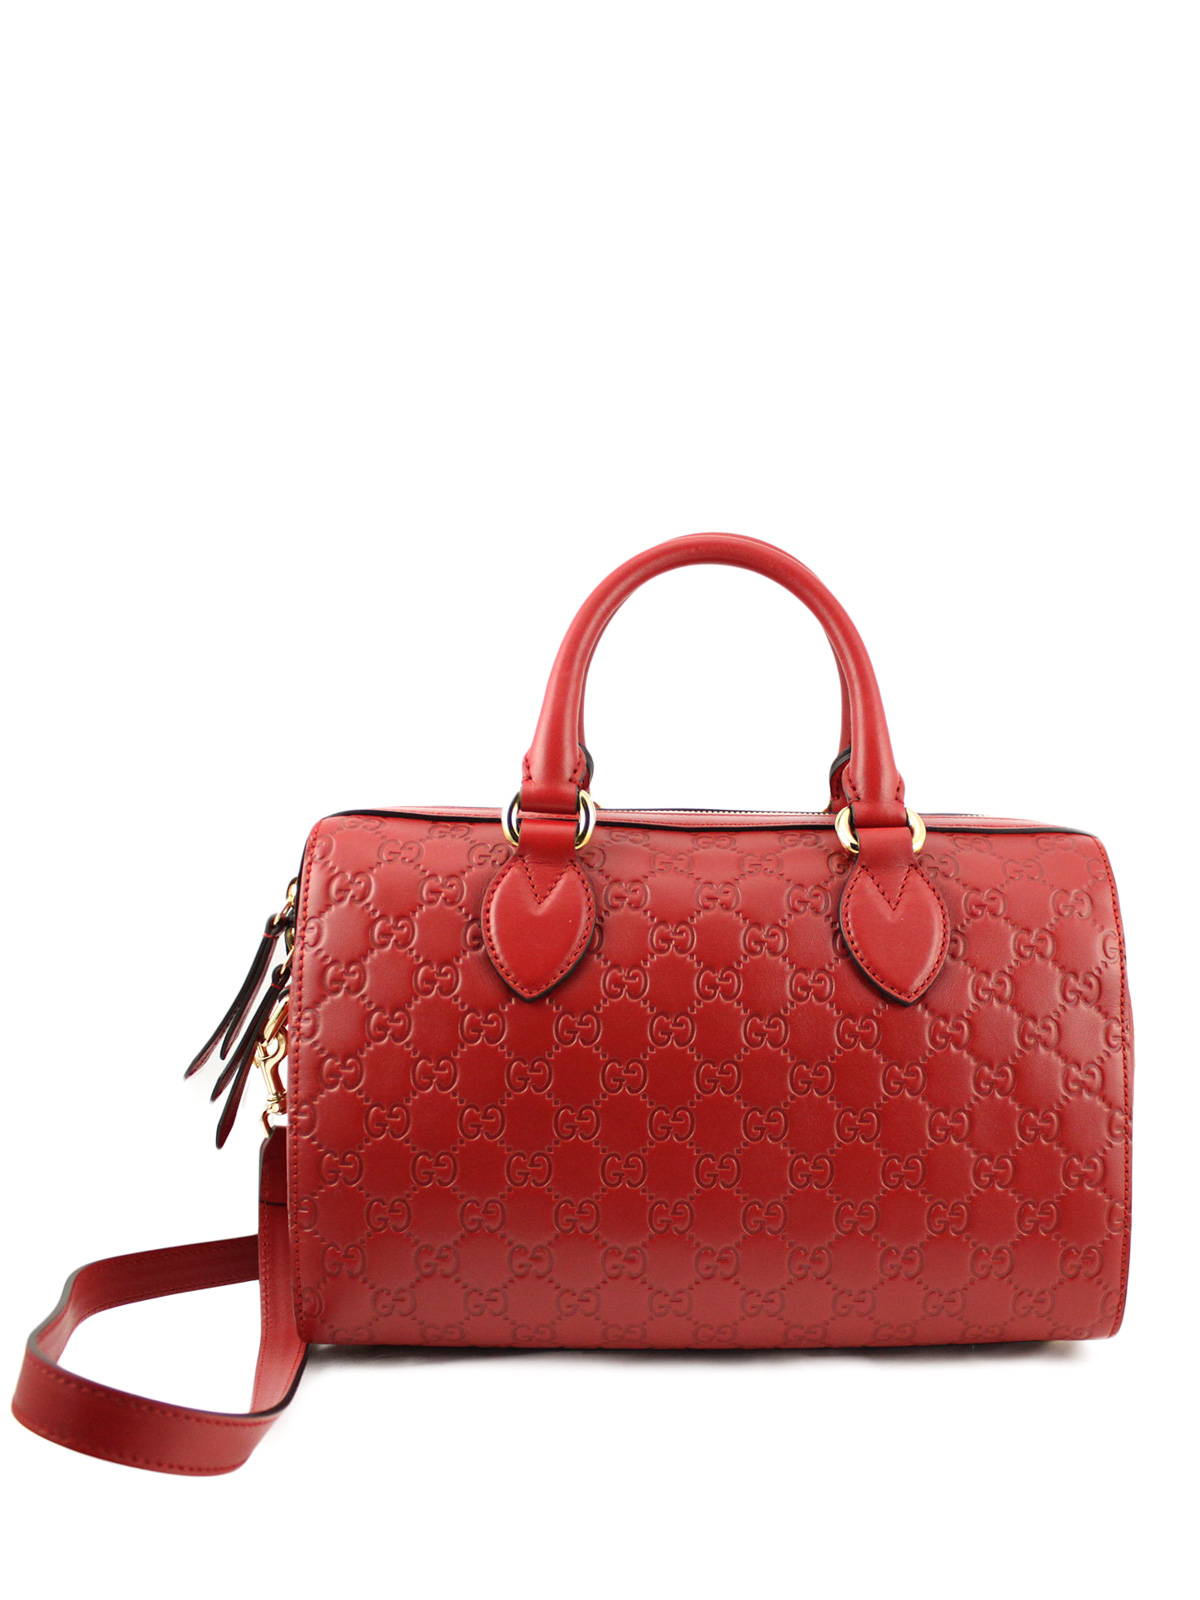 Gucci Signature leather bowling bag by Gucci